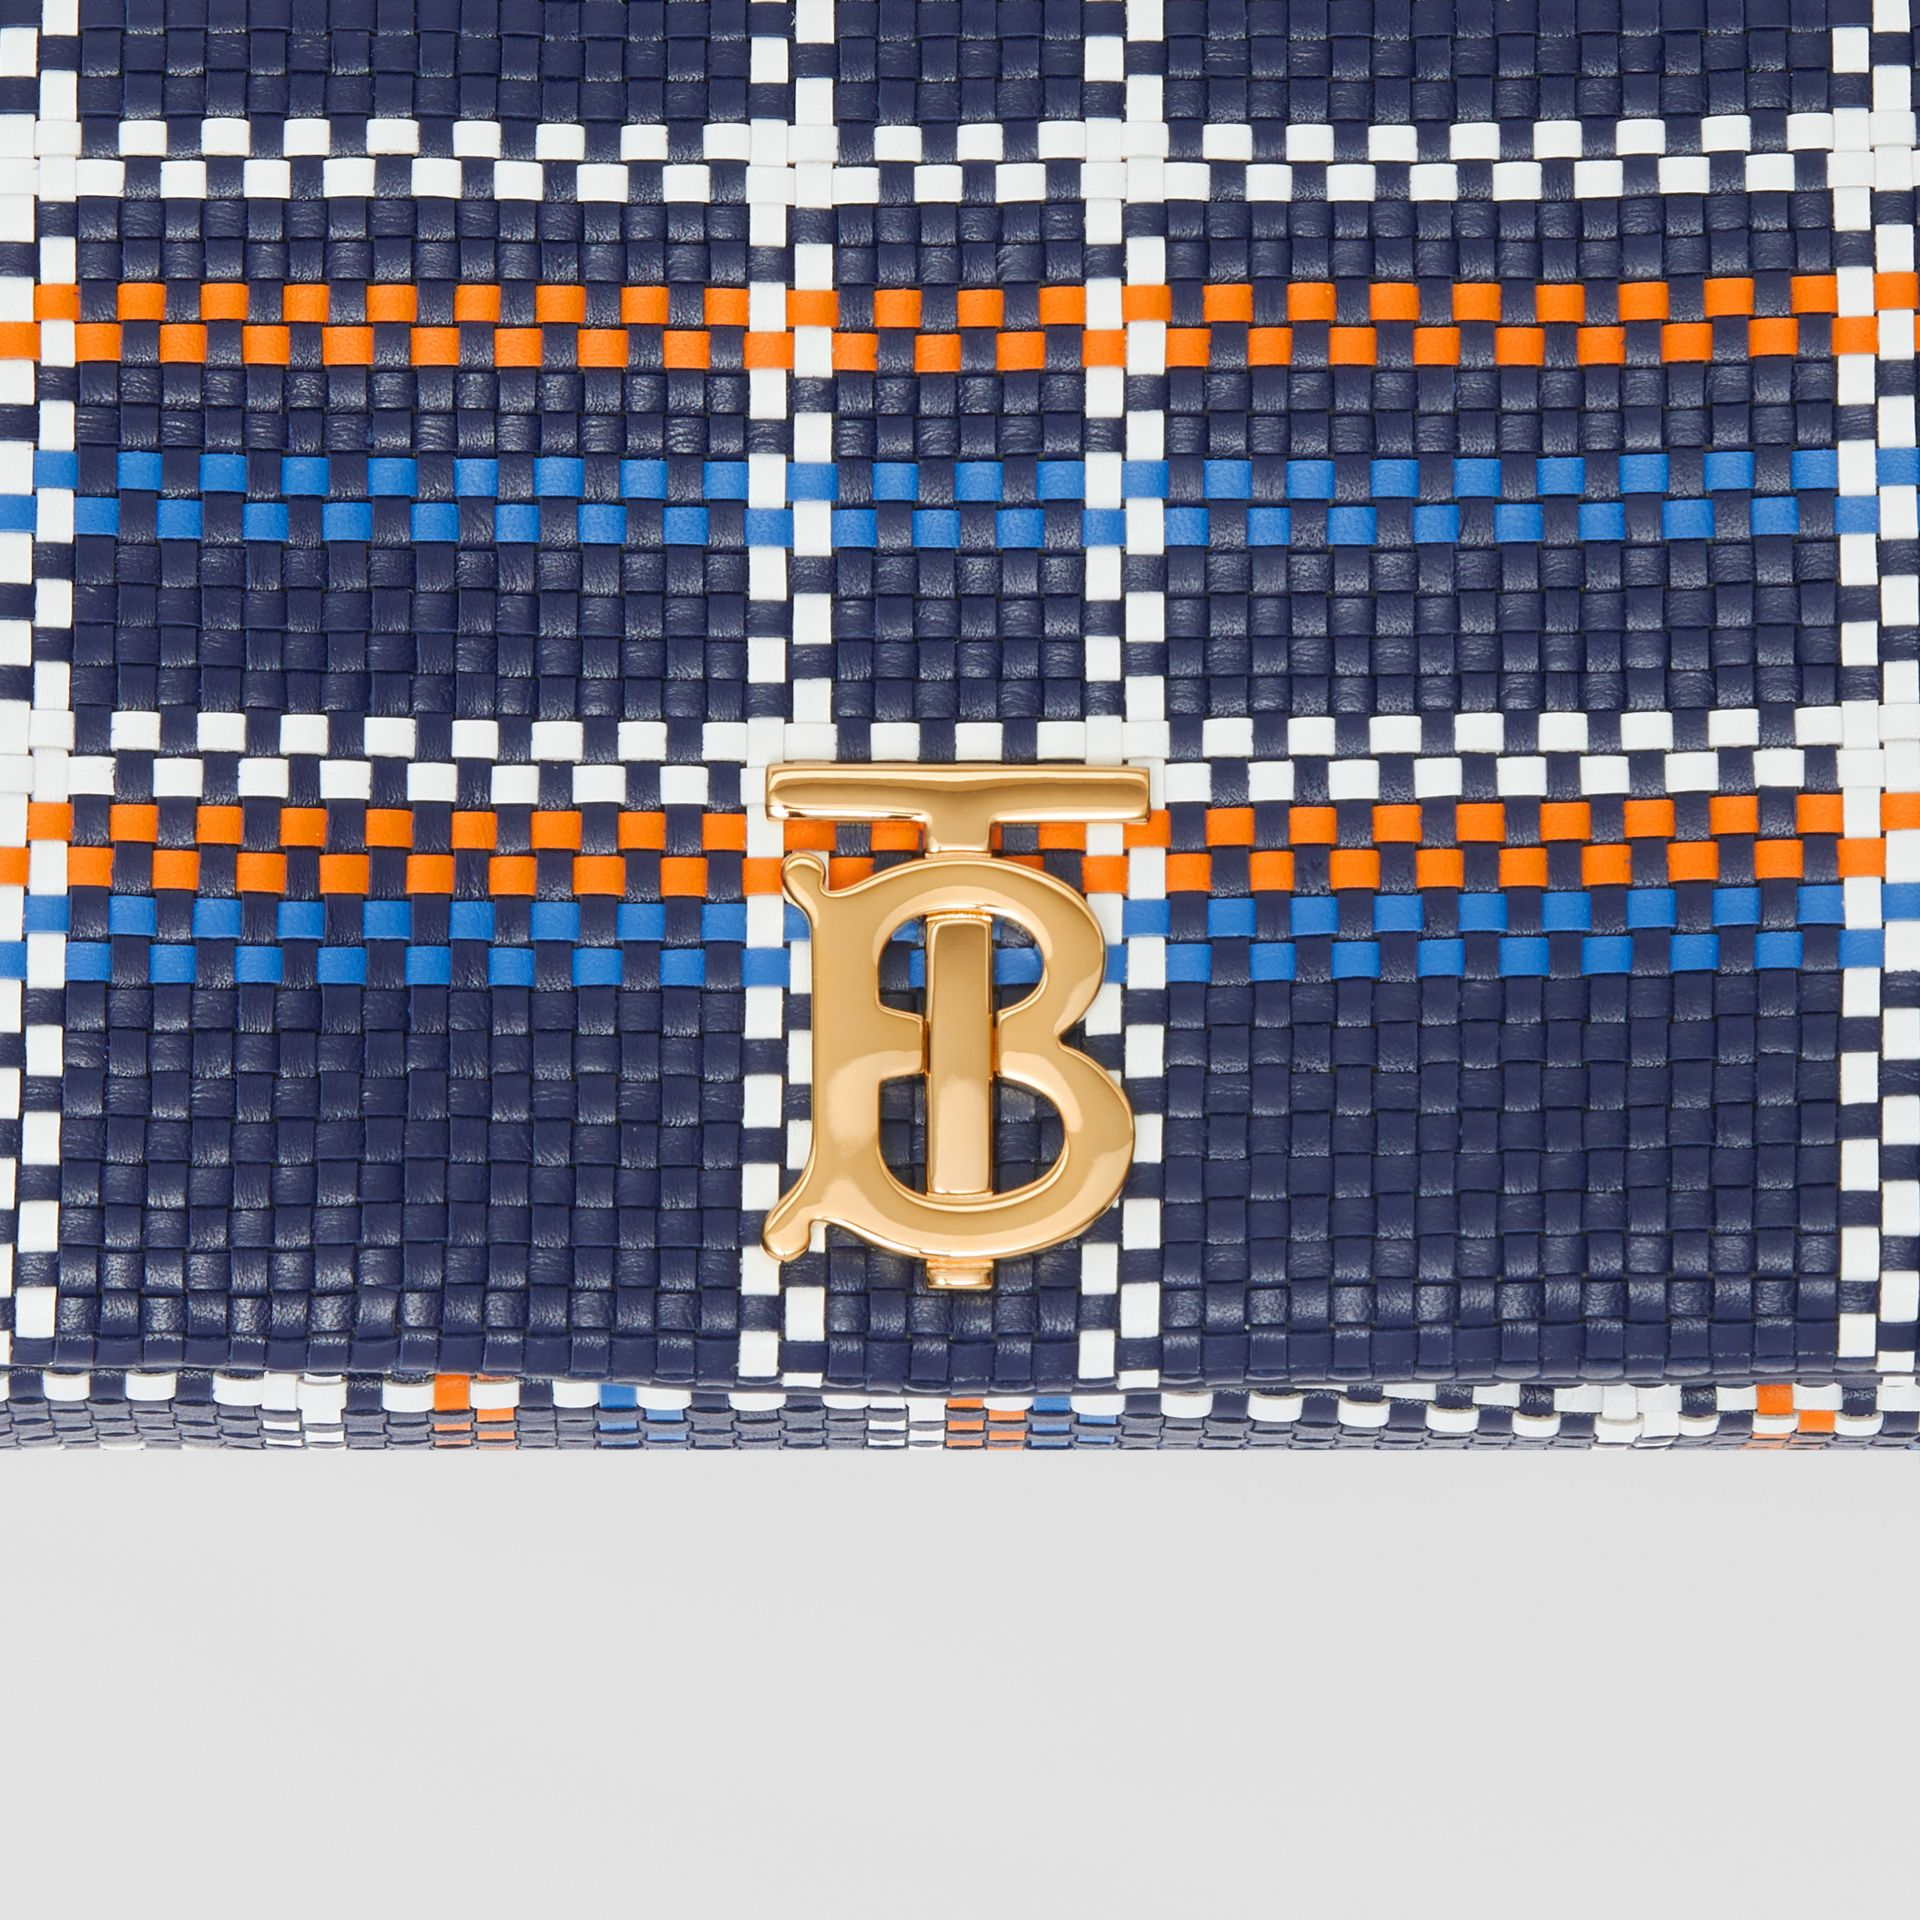 Small Latticed Leather Lola Bag in Blue/white/orange - Women | Burberry - gallery image 5